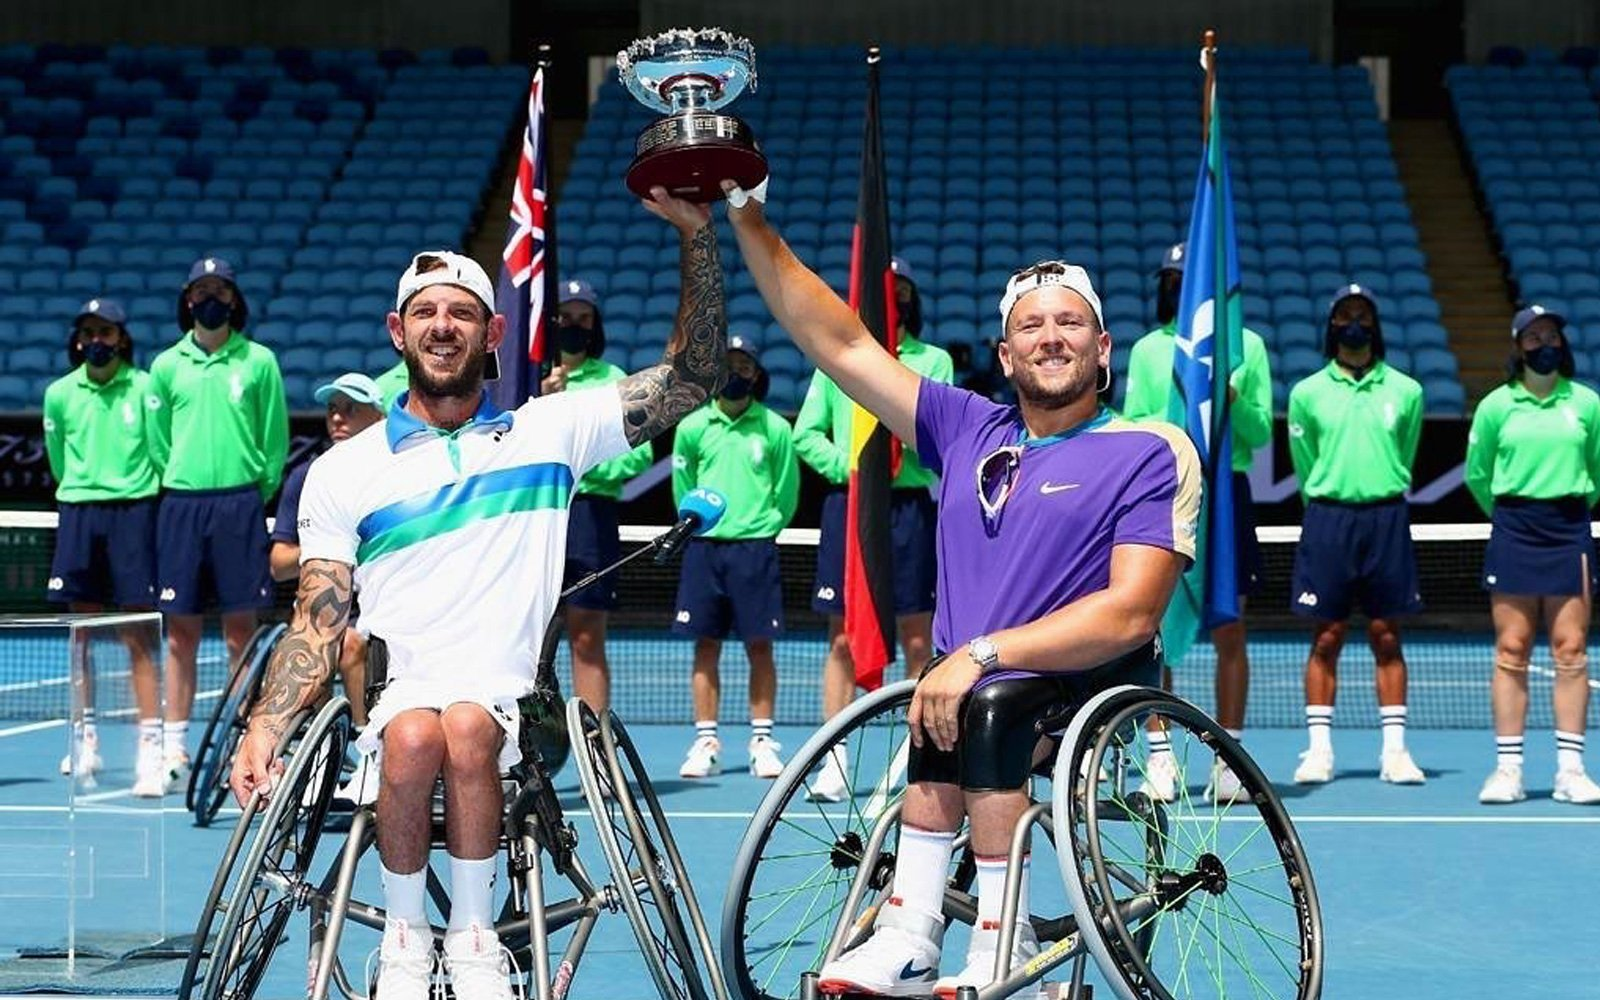 Alcott and Davidson celebrate fourth Australian Open triumph